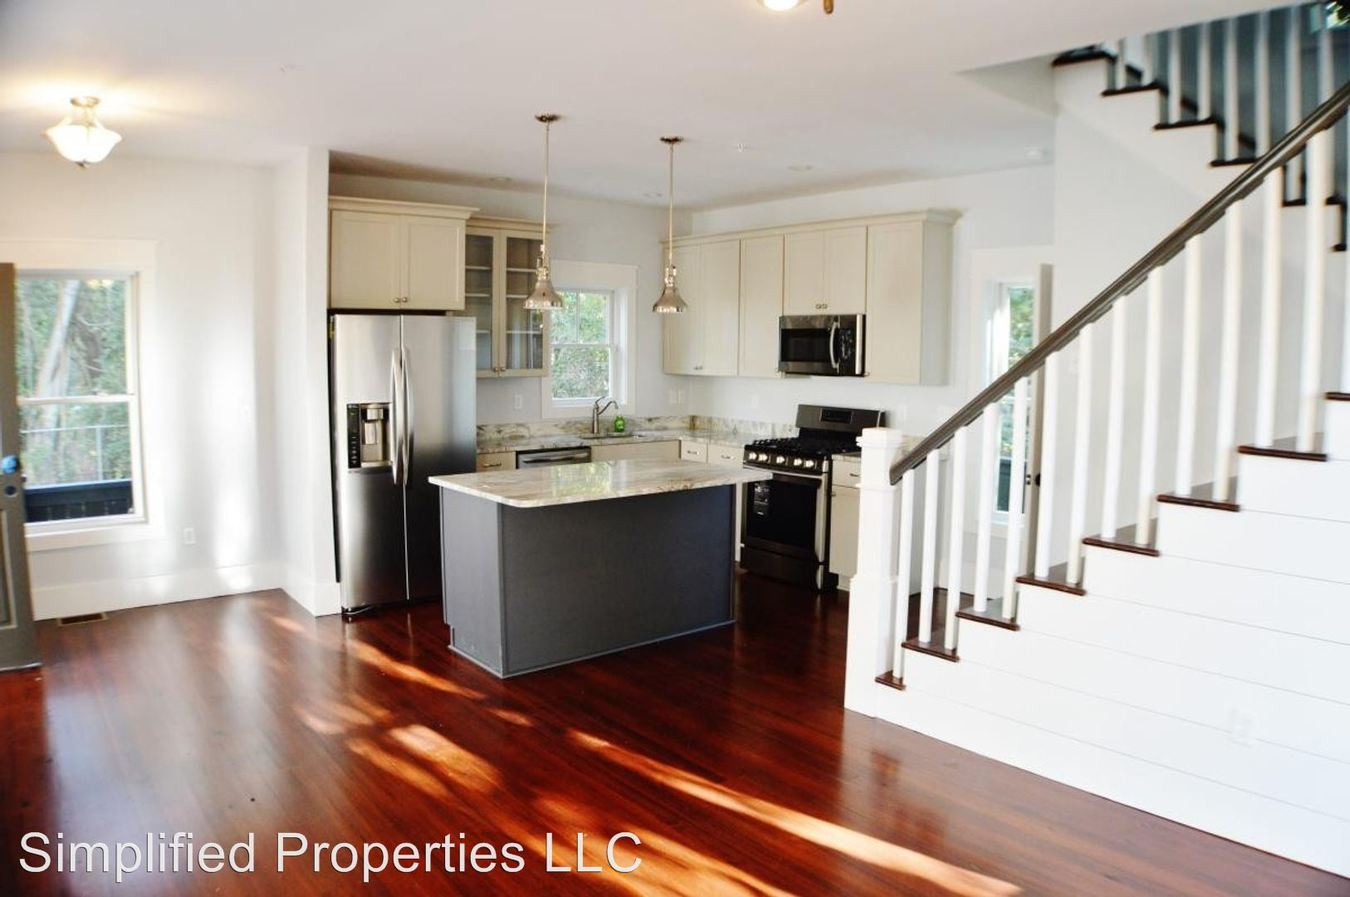 3 Bedrooms 2 Bathrooms Apartment for rent at 5 Hampstead Square in Charleston, SC